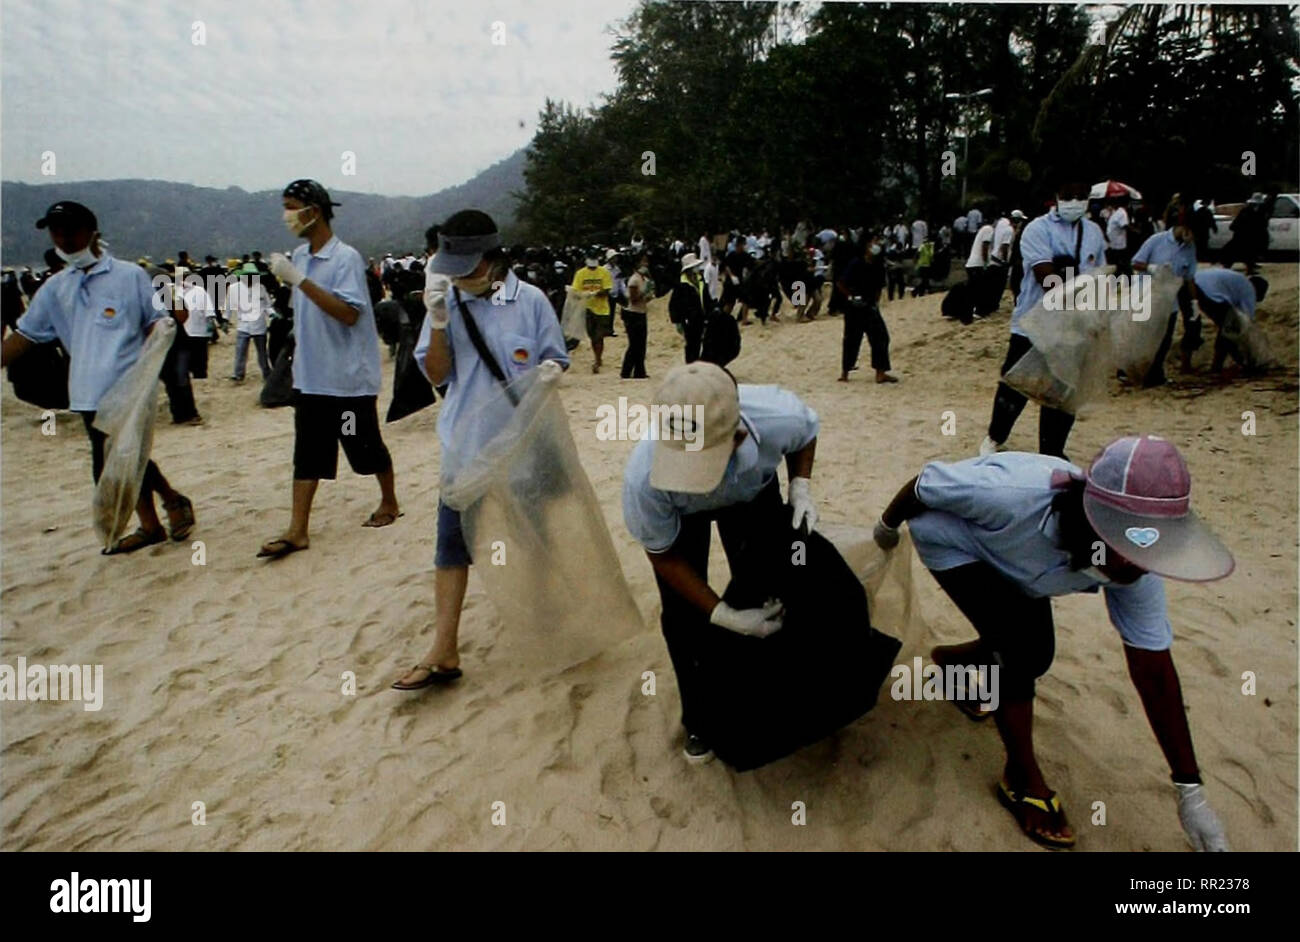 . After the Tsunami: Rapid Environmental Assessment. . Phuket. Thailand (5 January 2005). Hundreds of volunteers clean Patong beach in Phuket a week after the tsunami. With continued strong cooperation, the countries of the Indian Ocean can establish a course towards recovery that benefits people and the environment. © Pornchai Kittiwongsakul/AFP/Getty Images 1.3 Recommendations Reconstruction and restoration begins now. Mainstreaming environmental concerns is a prerequisite for sustainable reconstruction. Environmental management should always take as its point of departure the need to involv - Stock Image